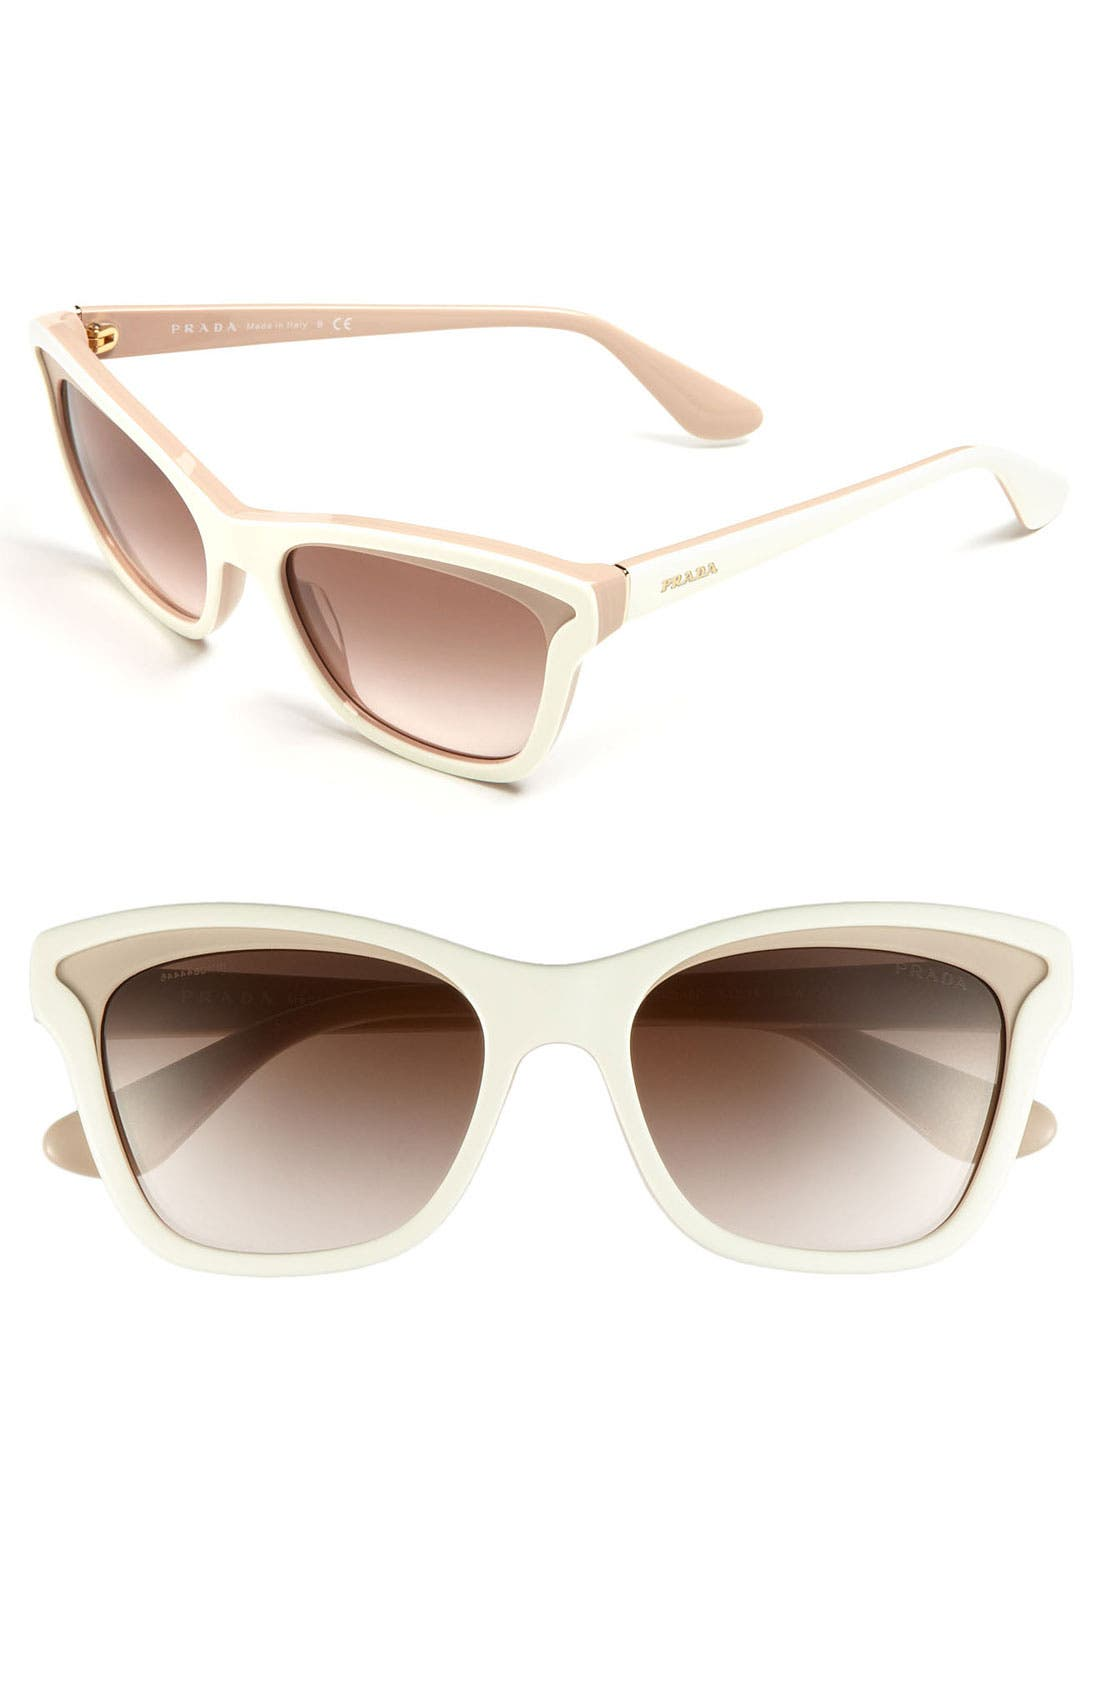 Main Image - Prada 54mm Sunglasses